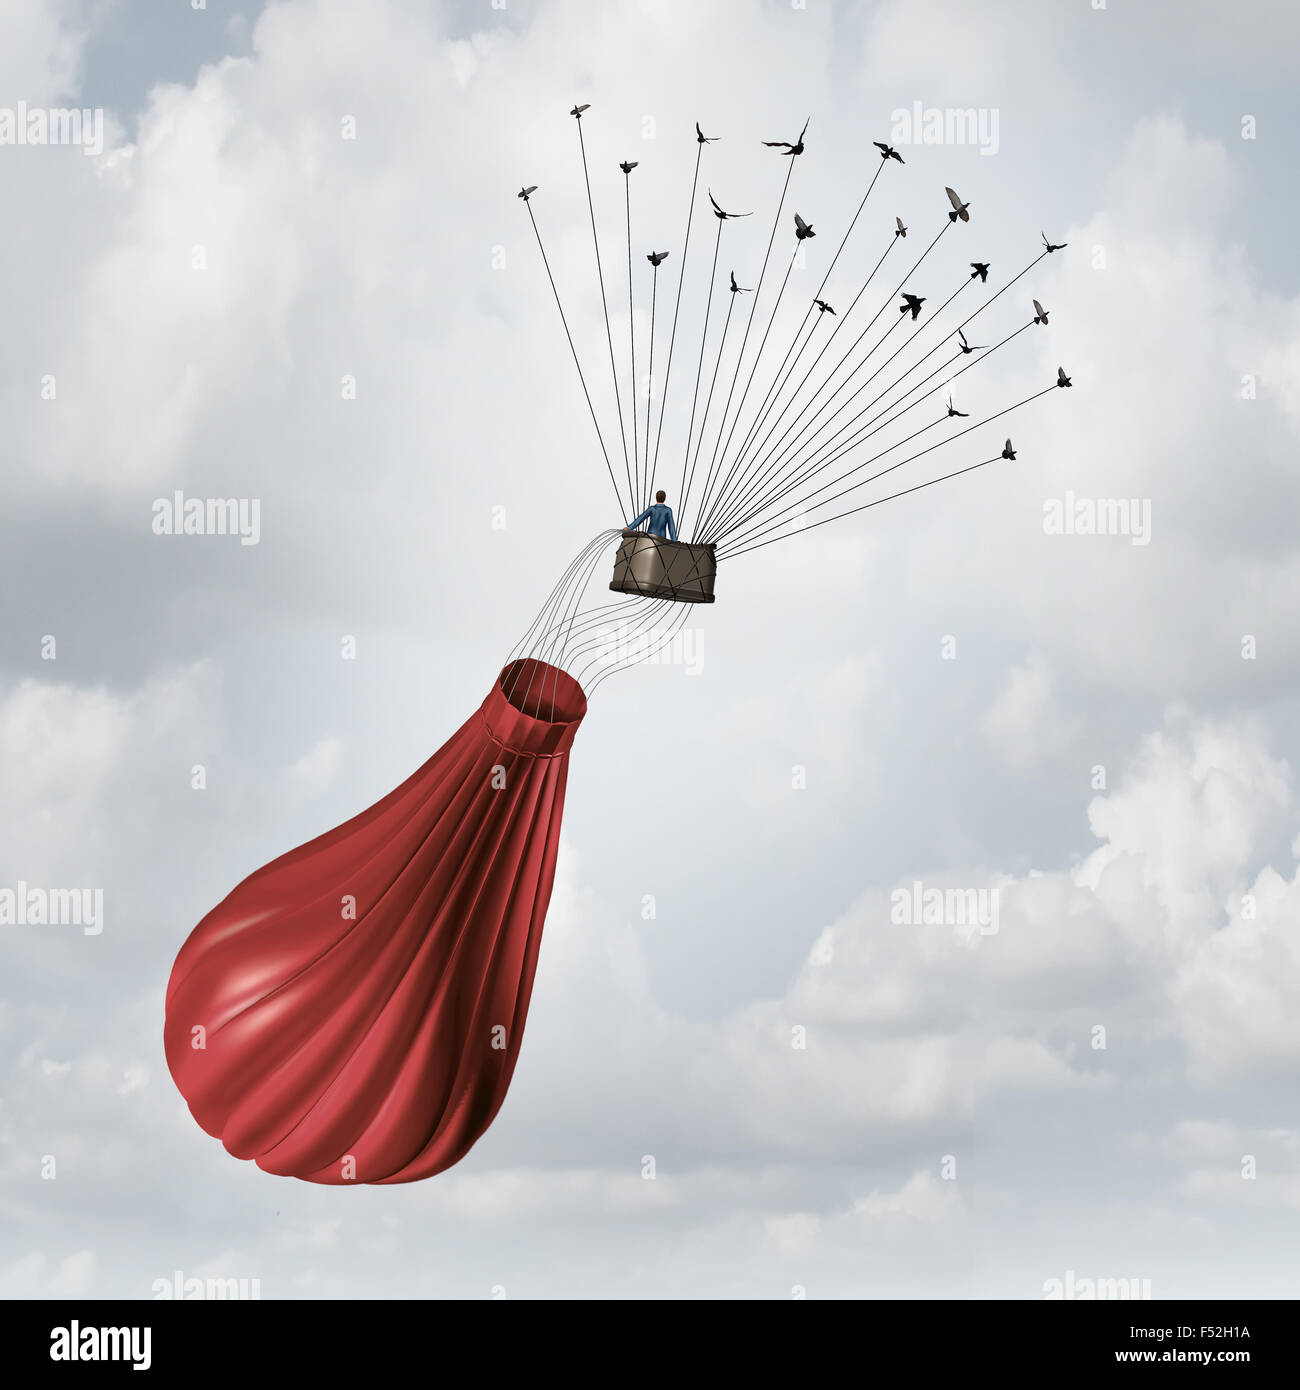 Business team solution concept and teamwork recovery symbol as a businessman in a deflated broken red hot air balloon - Stock Image